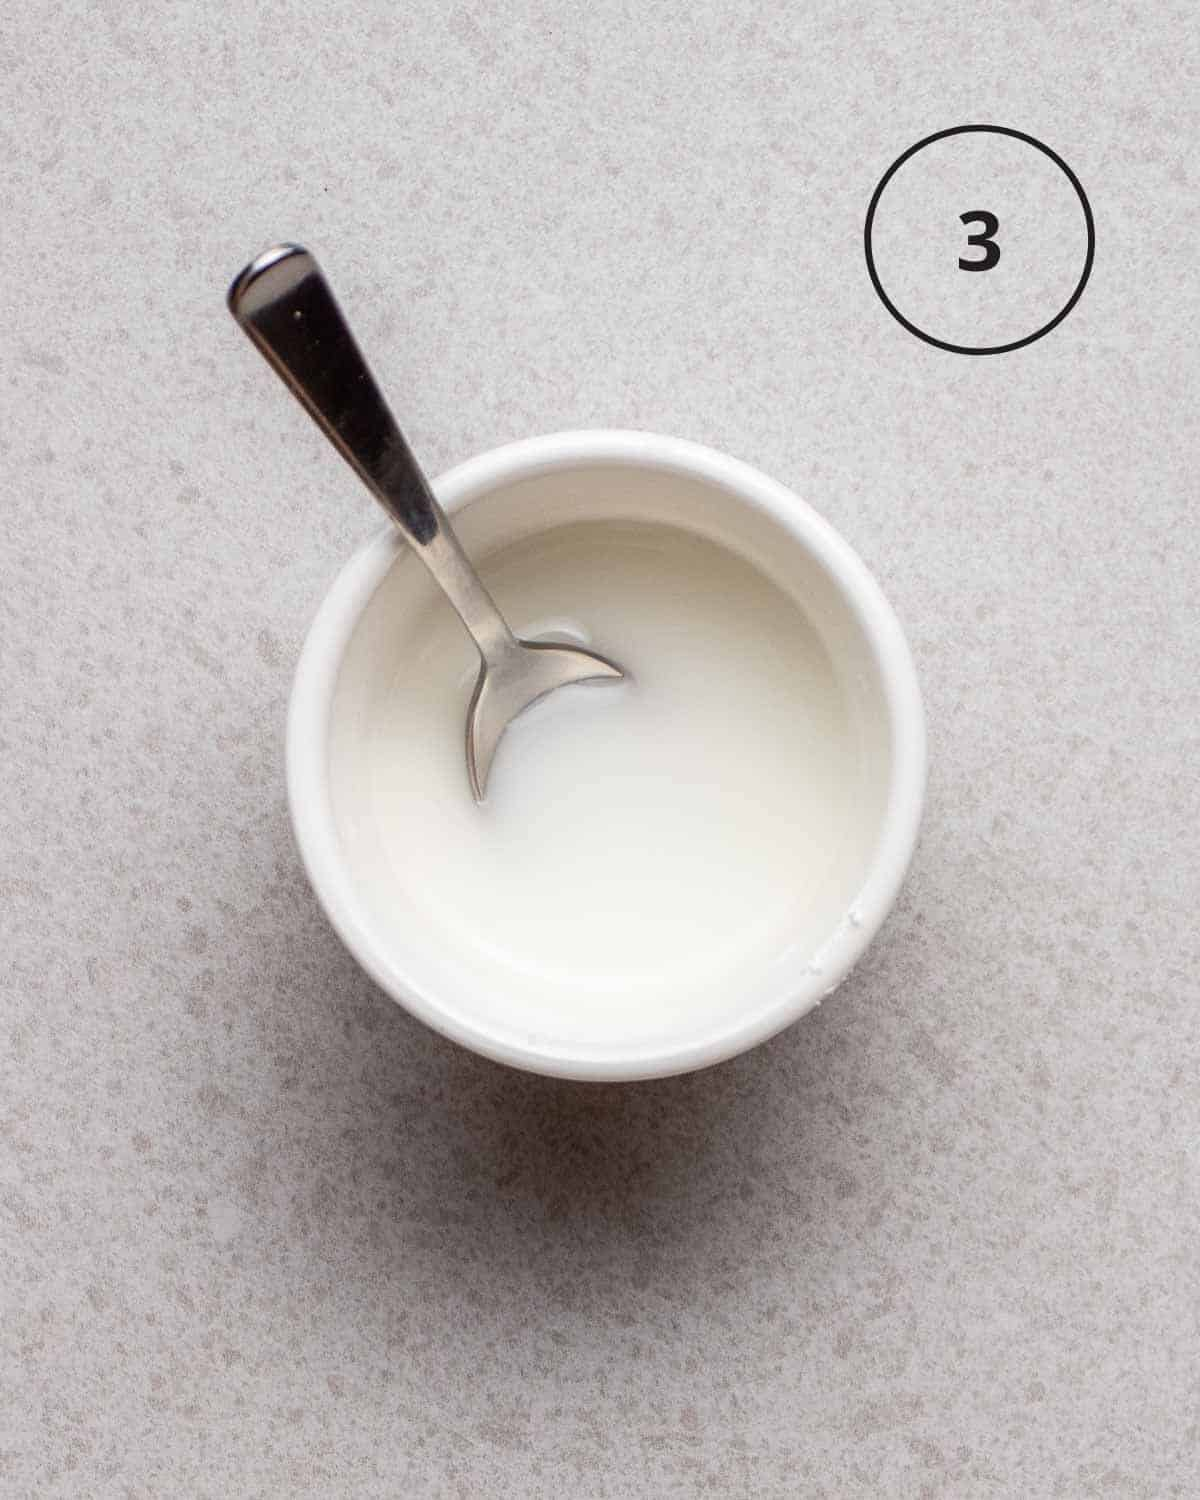 Cornstarch slurry in a white bowl with a spoon.